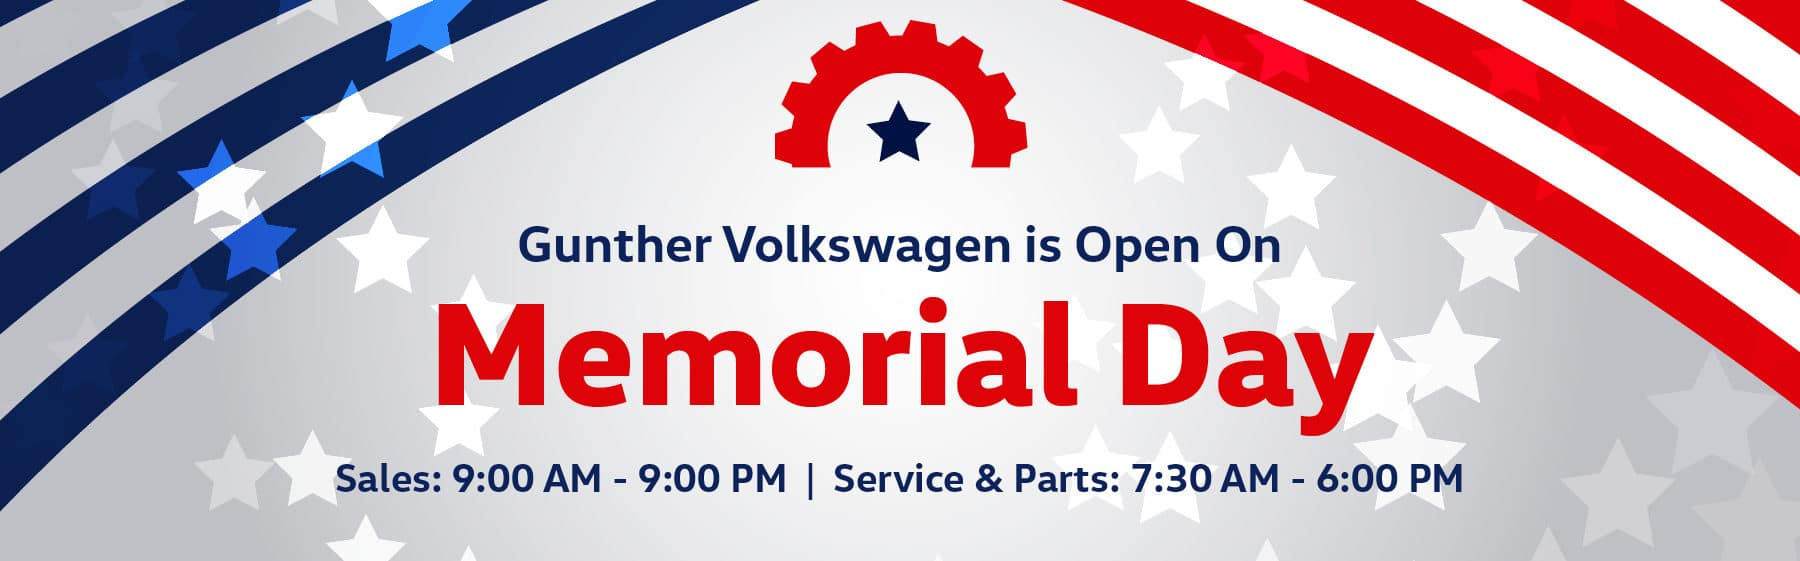 Gunther Volkswagen is open on Memorial Day